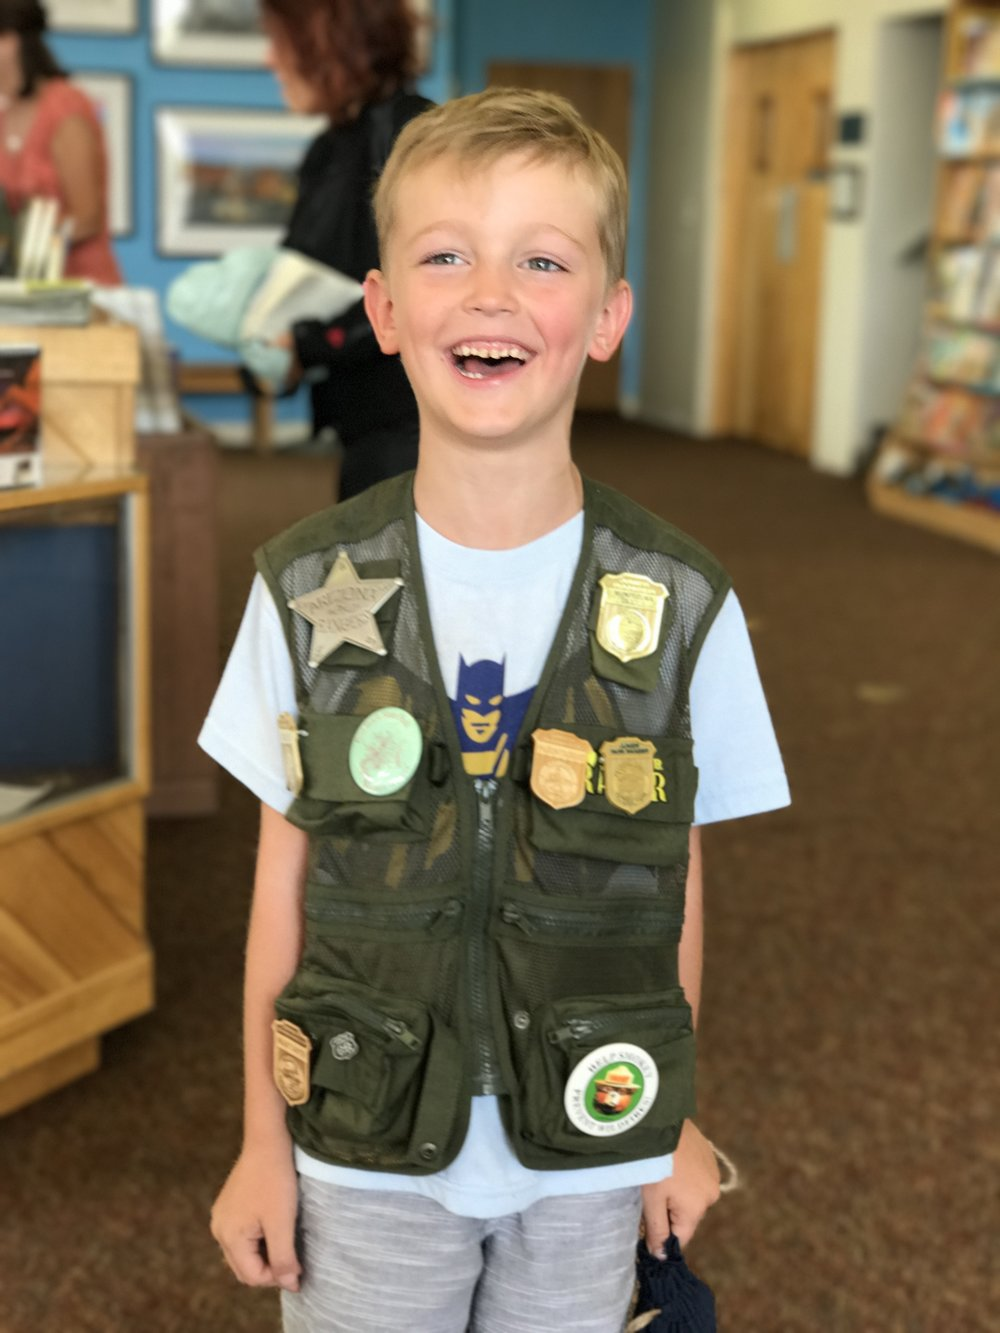 aaker junior ranger.JPG